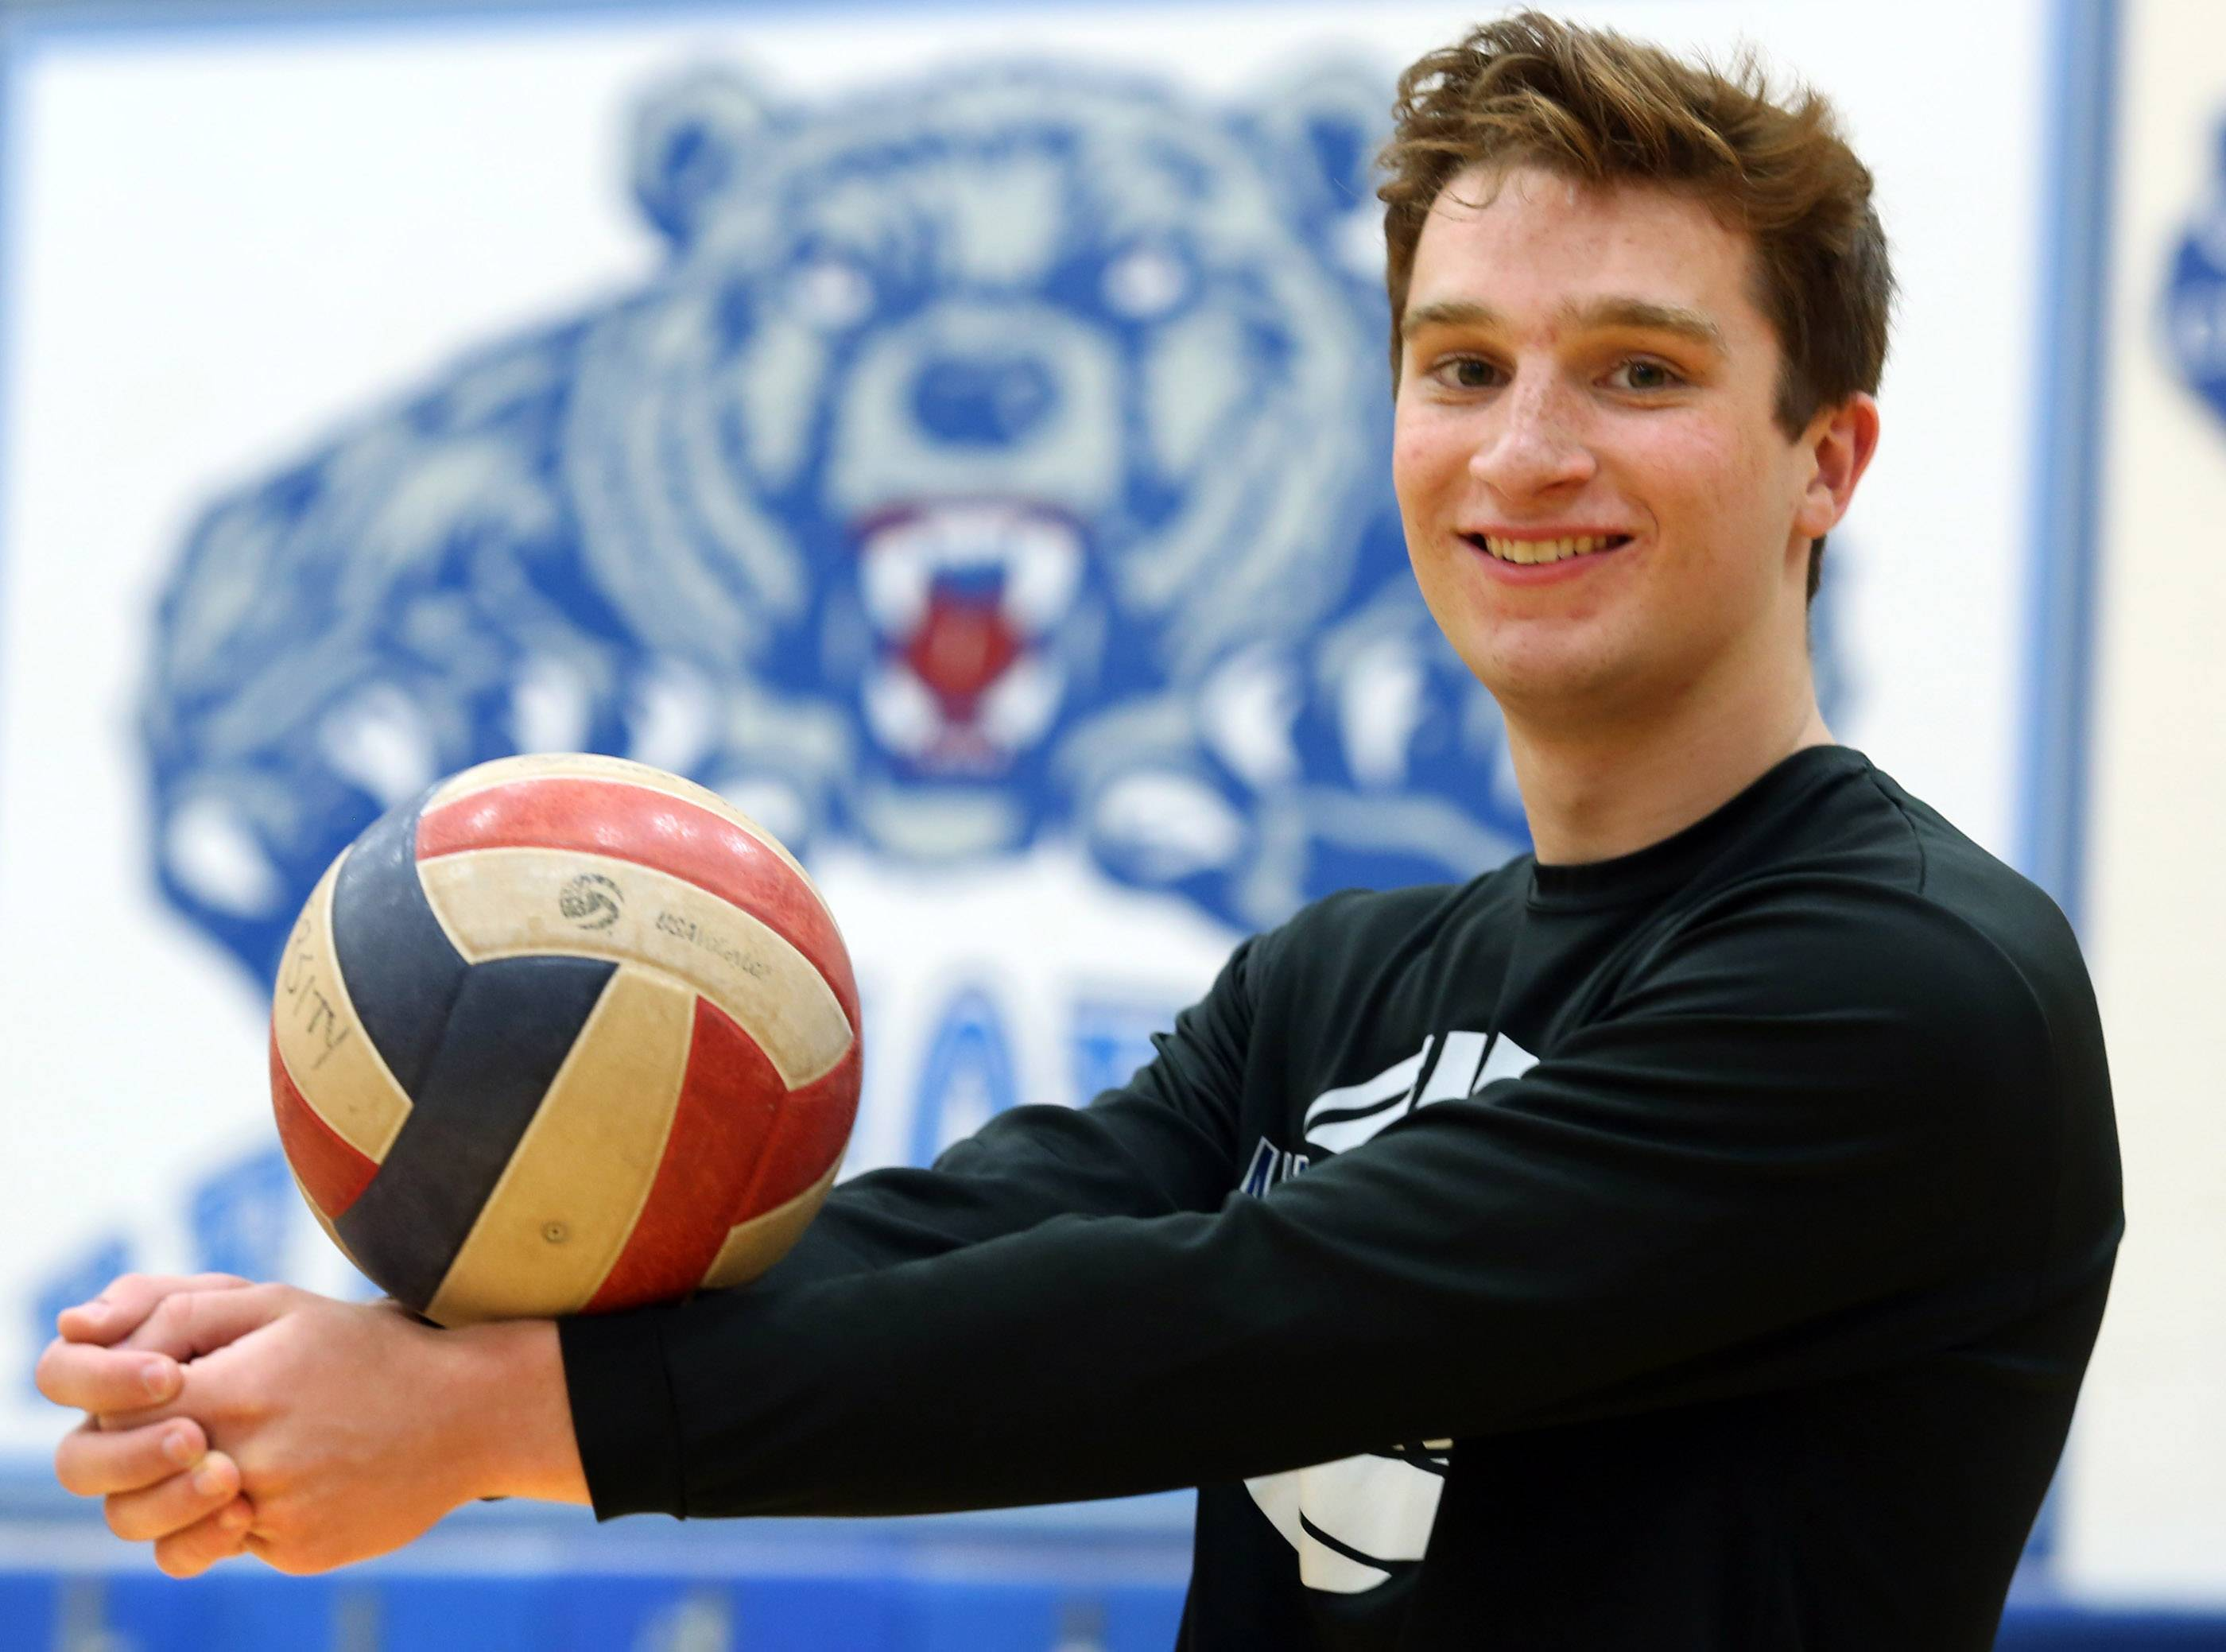 Senior standout Michael Savio helped put Lake Zurich on the volleyball map through a standout four-year career.